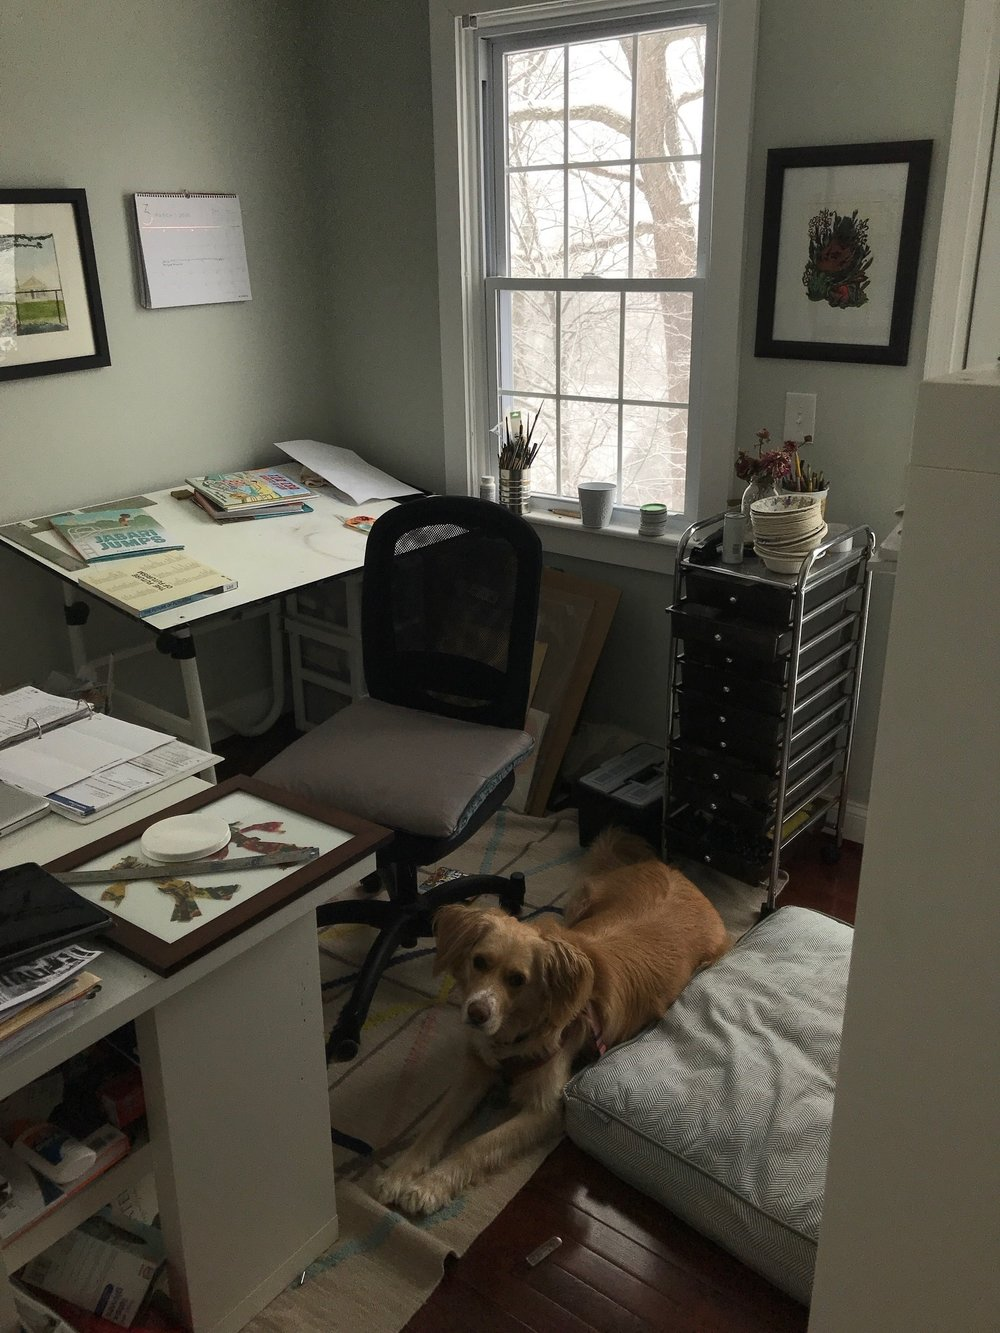 Shadra's studio space in Baltimore, and her sweet dog, Lucky (image courtesy of Shadra).